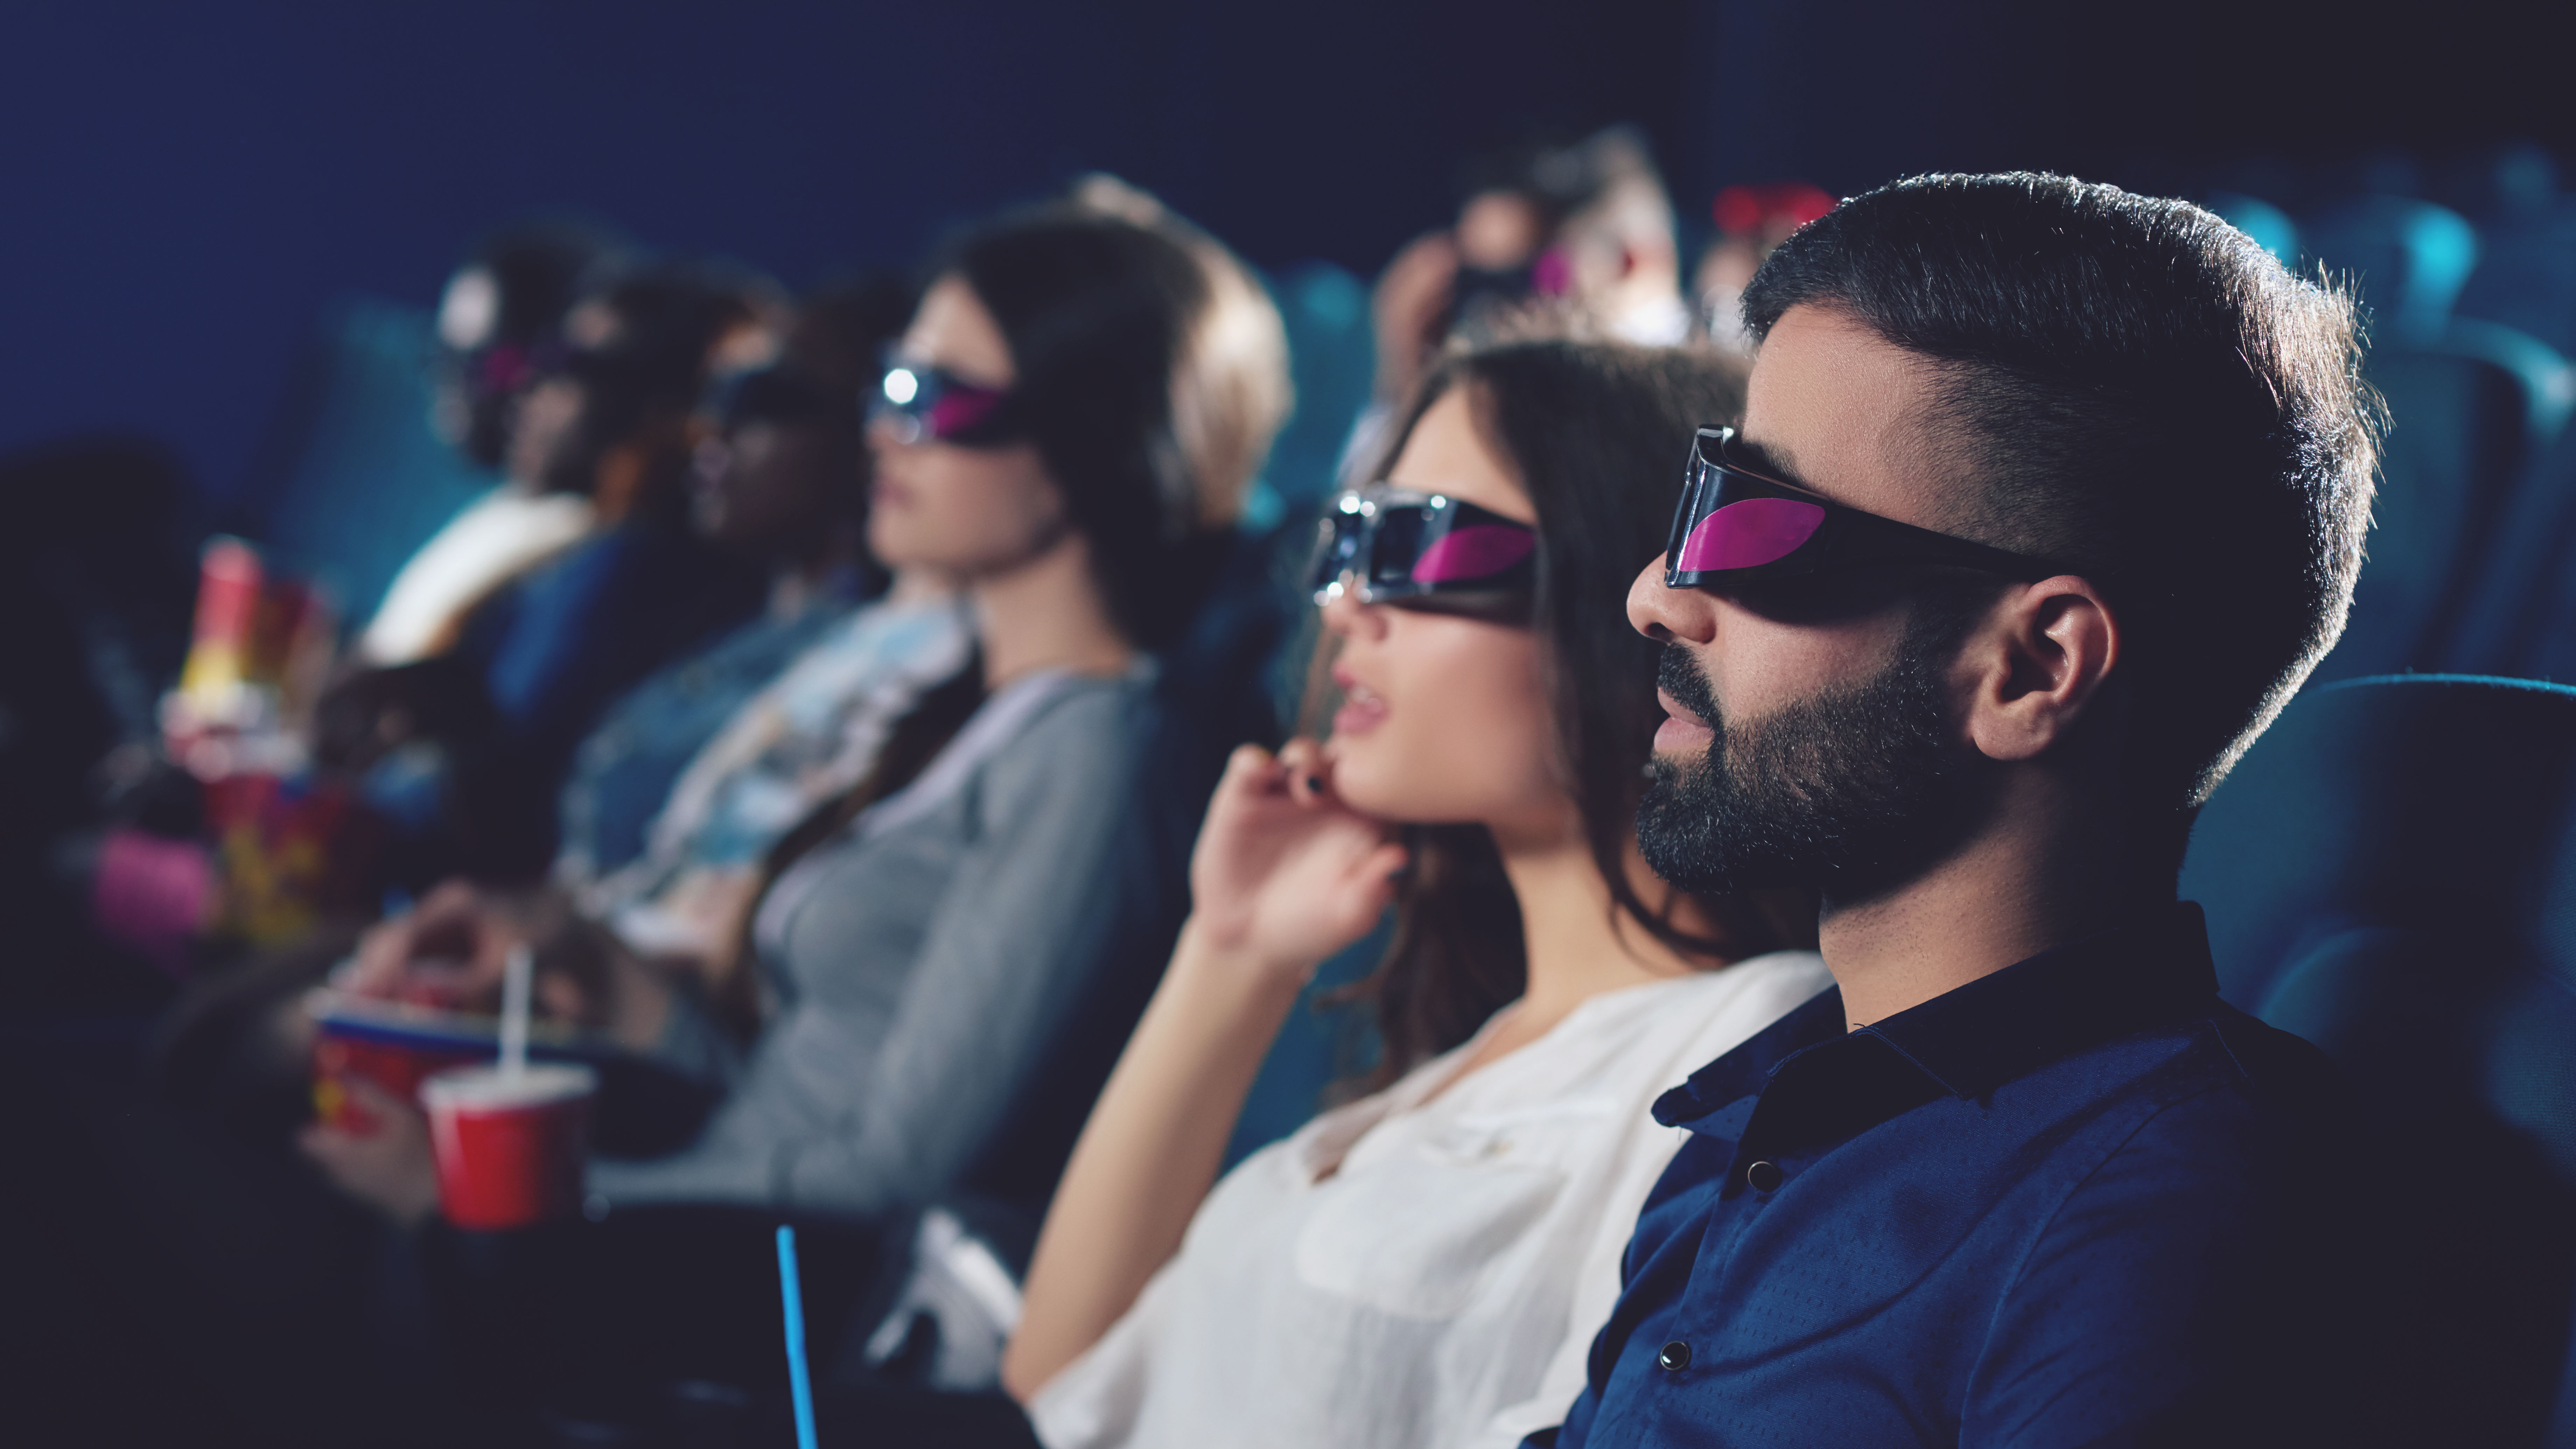 Movie night with 3D glasses